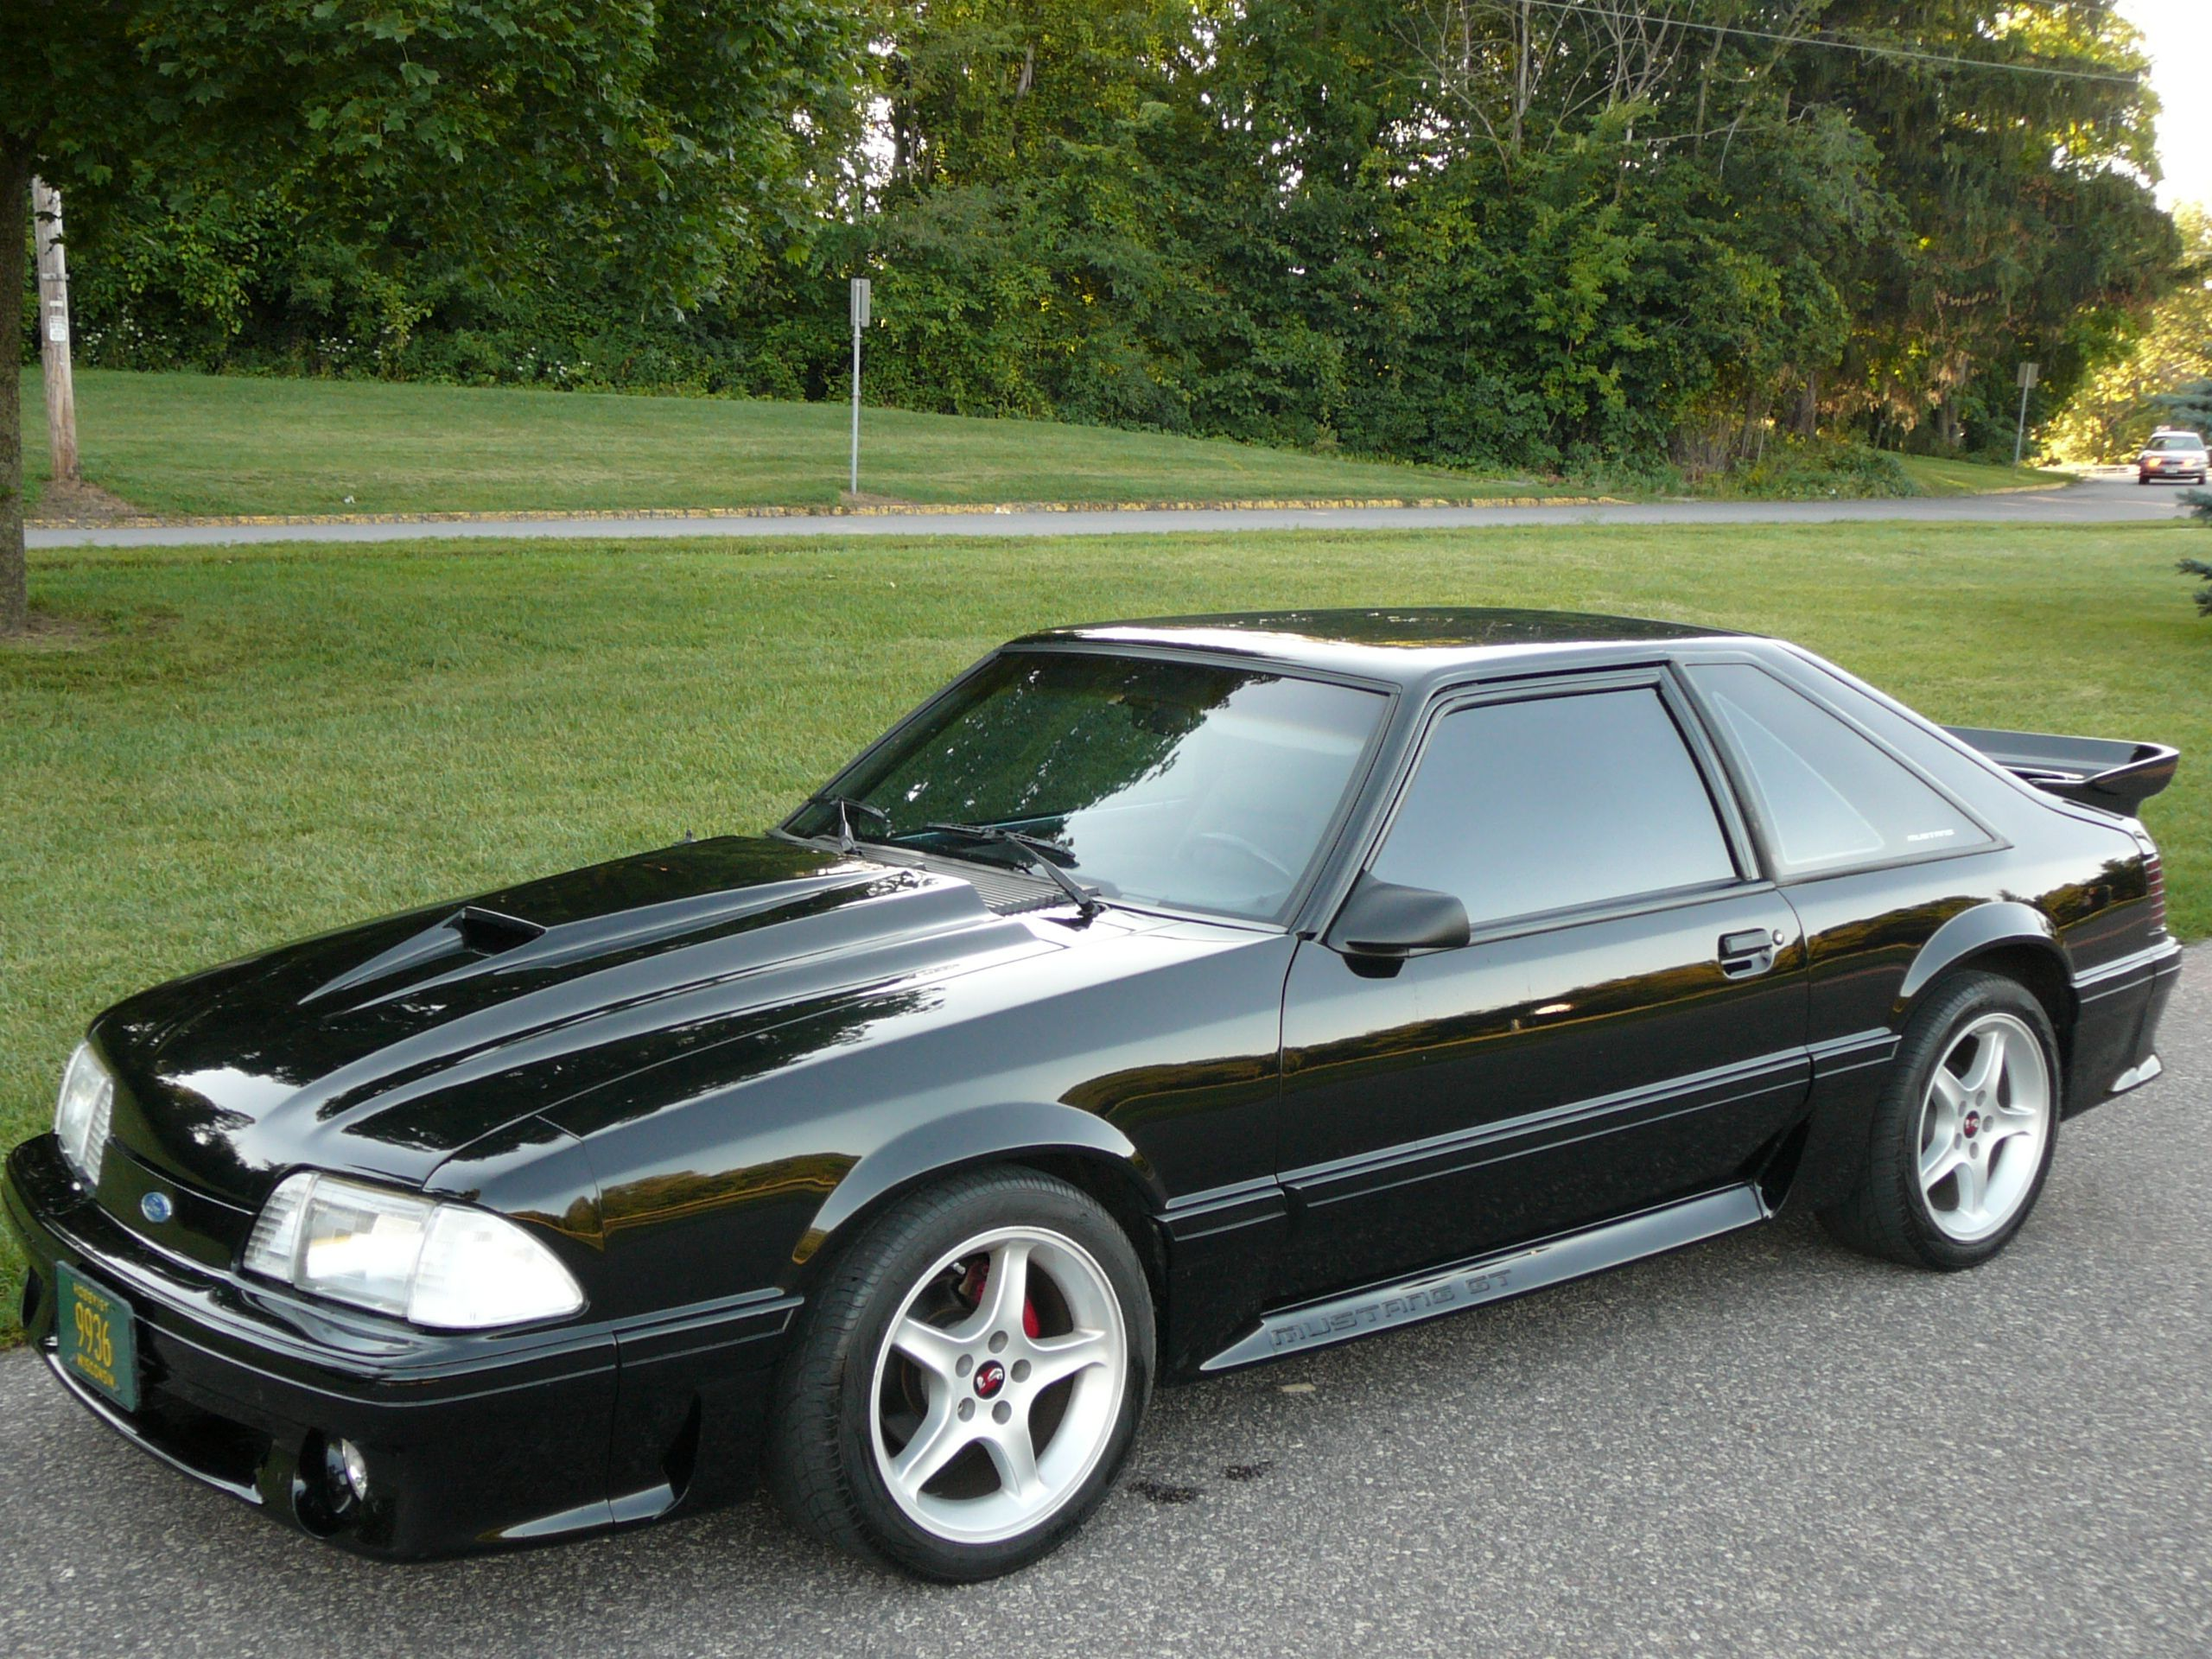 Florida 5.0 - Gallery | Transportation | Pinterest | Mustang, Fox ...